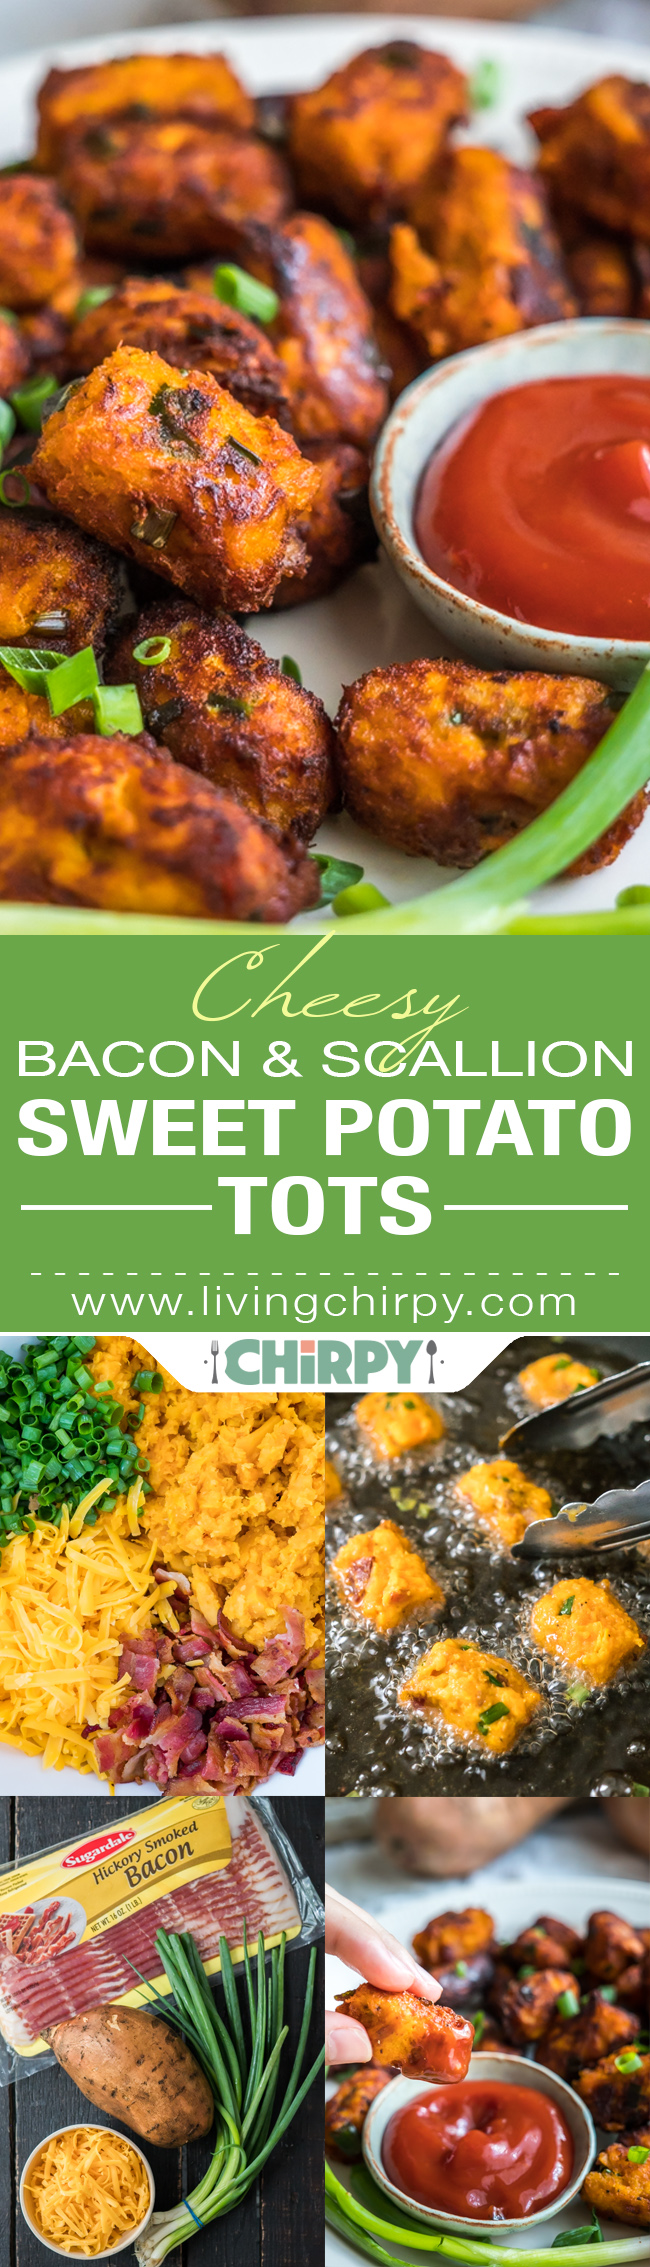 Cheesy Bacon & Scallion Sweet Potato Tots Pin